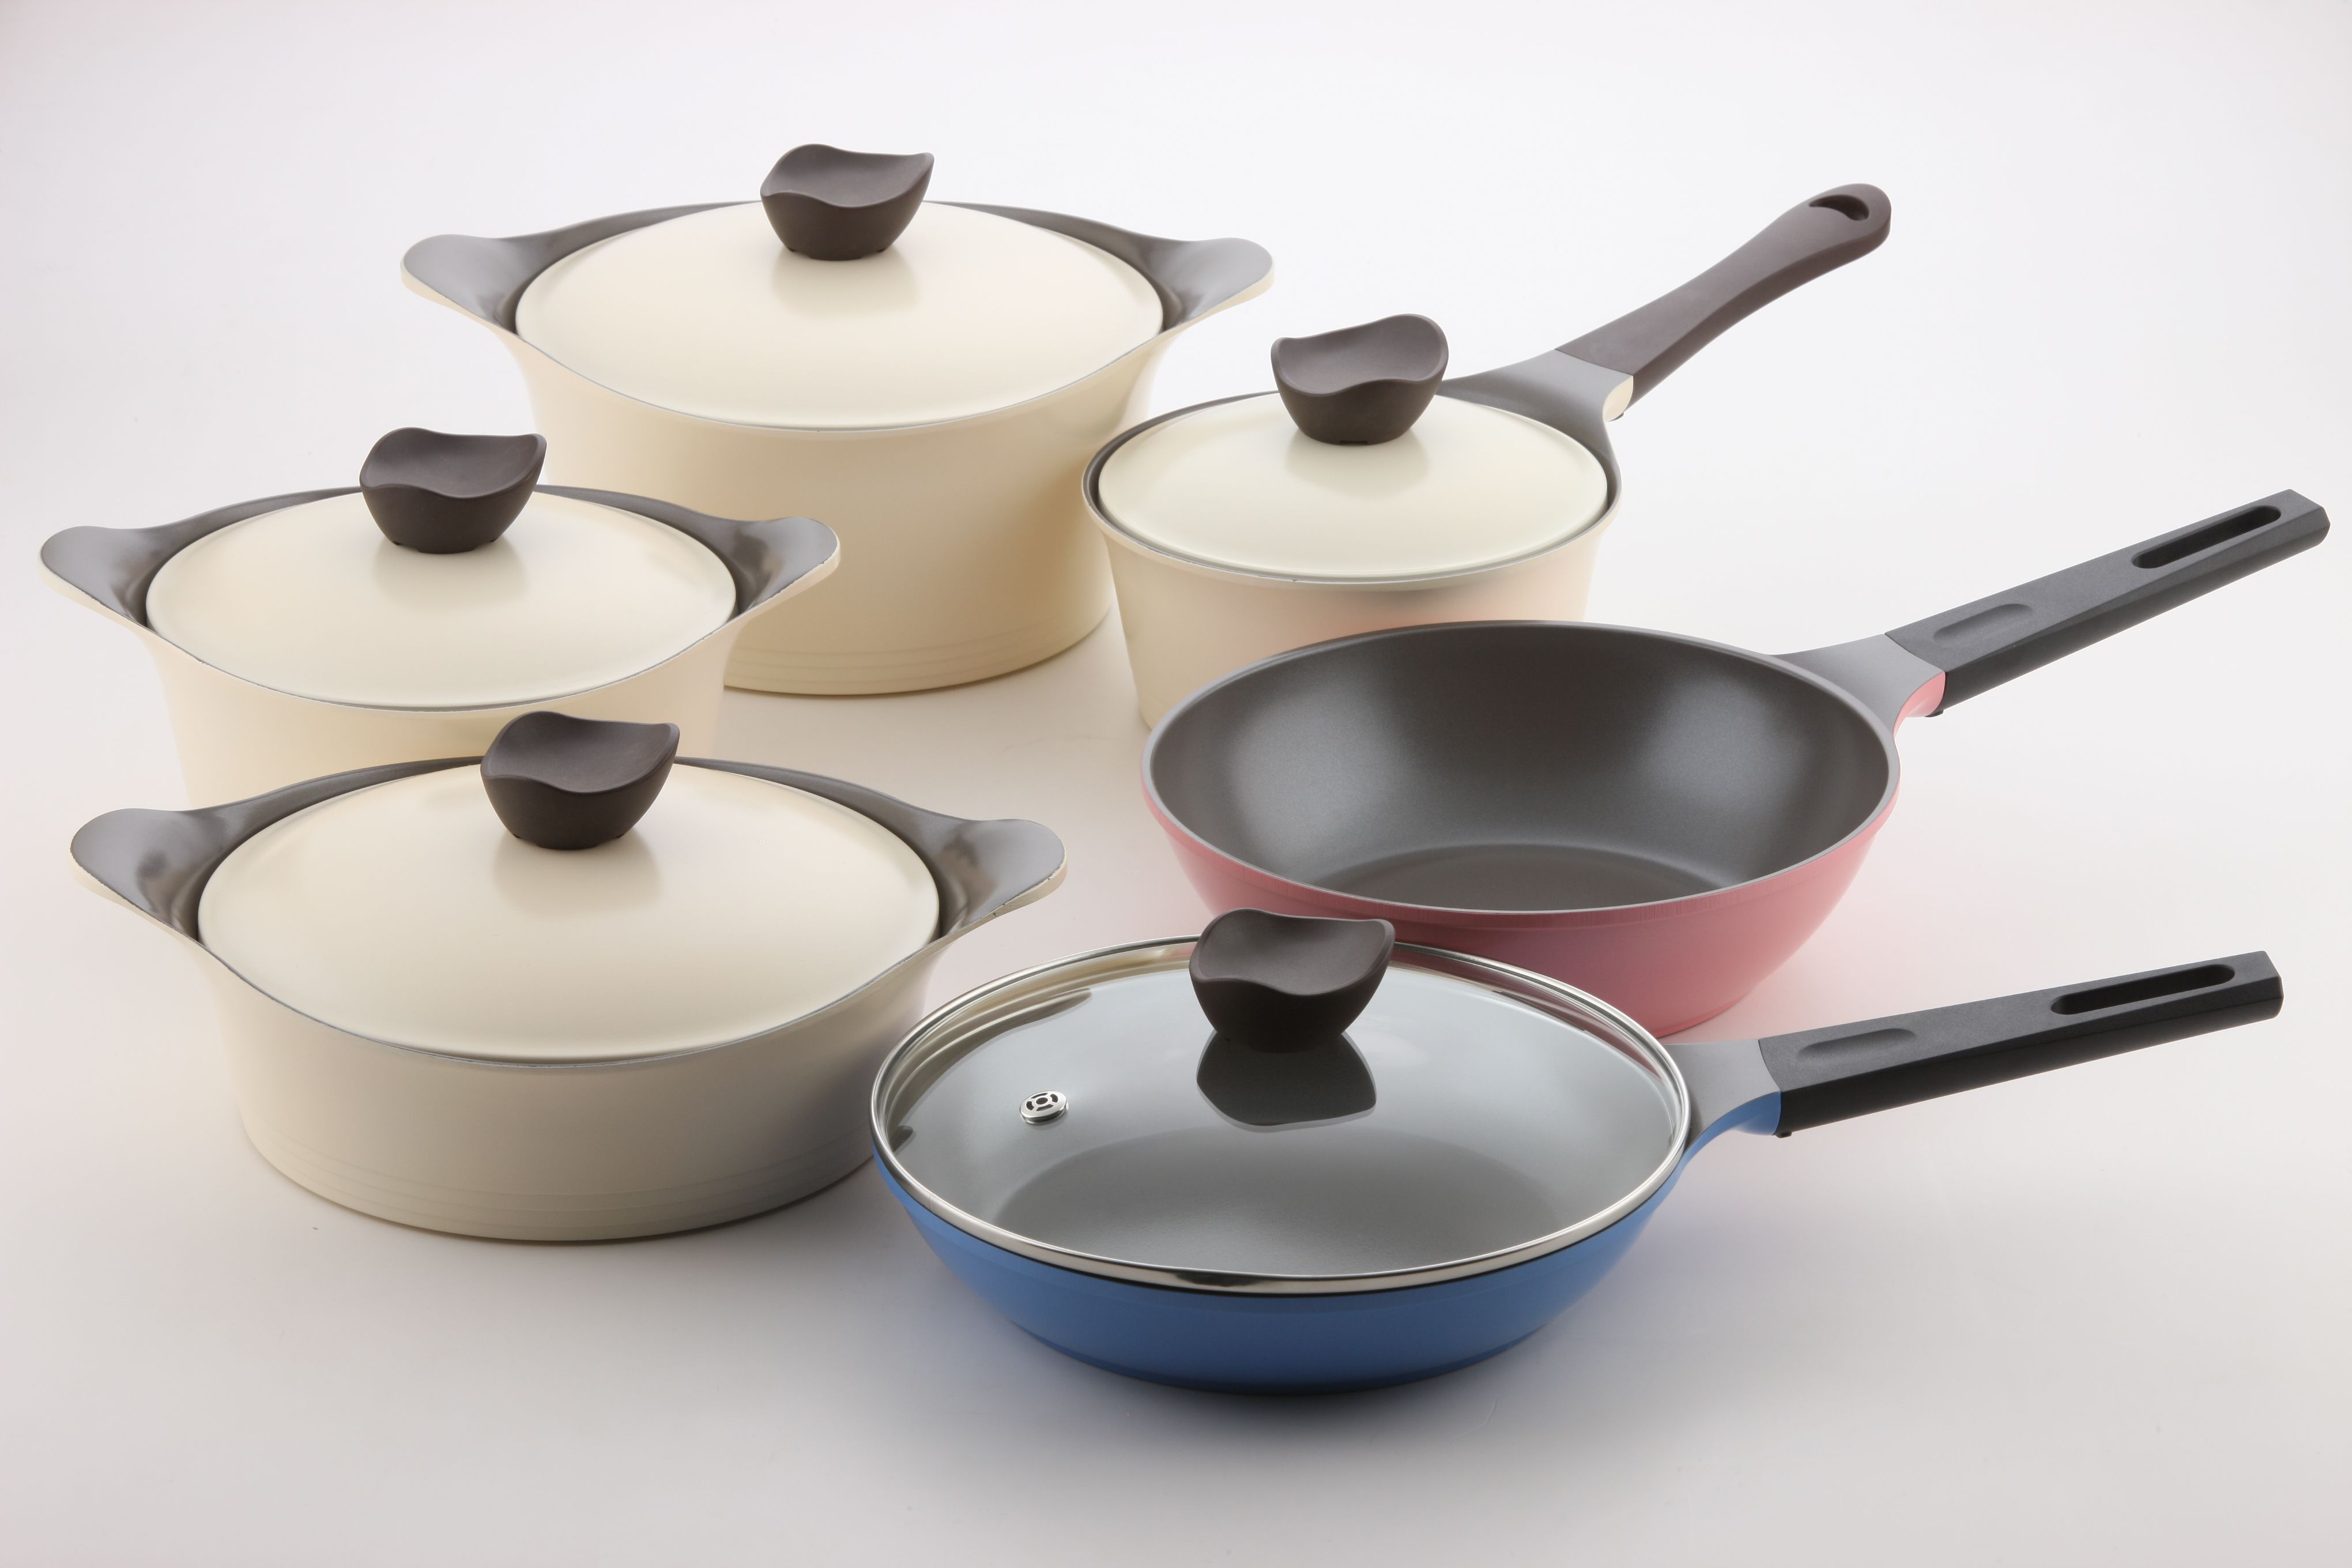 Aeni Cookware Set Cookware And Bakeware Cookware Set Kitchen Tools